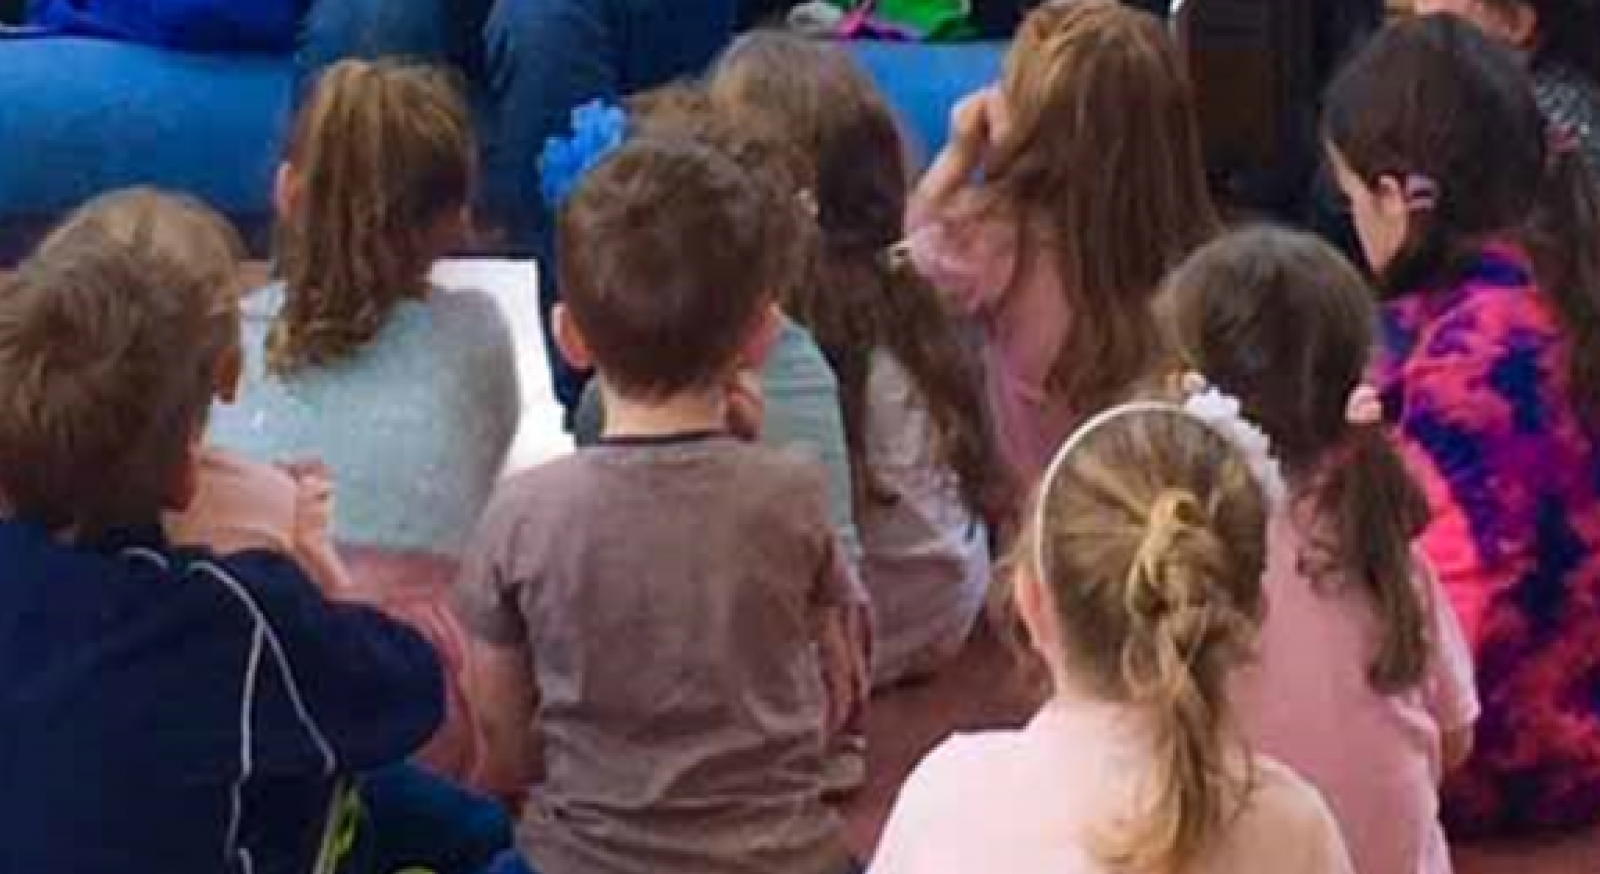 Children at a library event